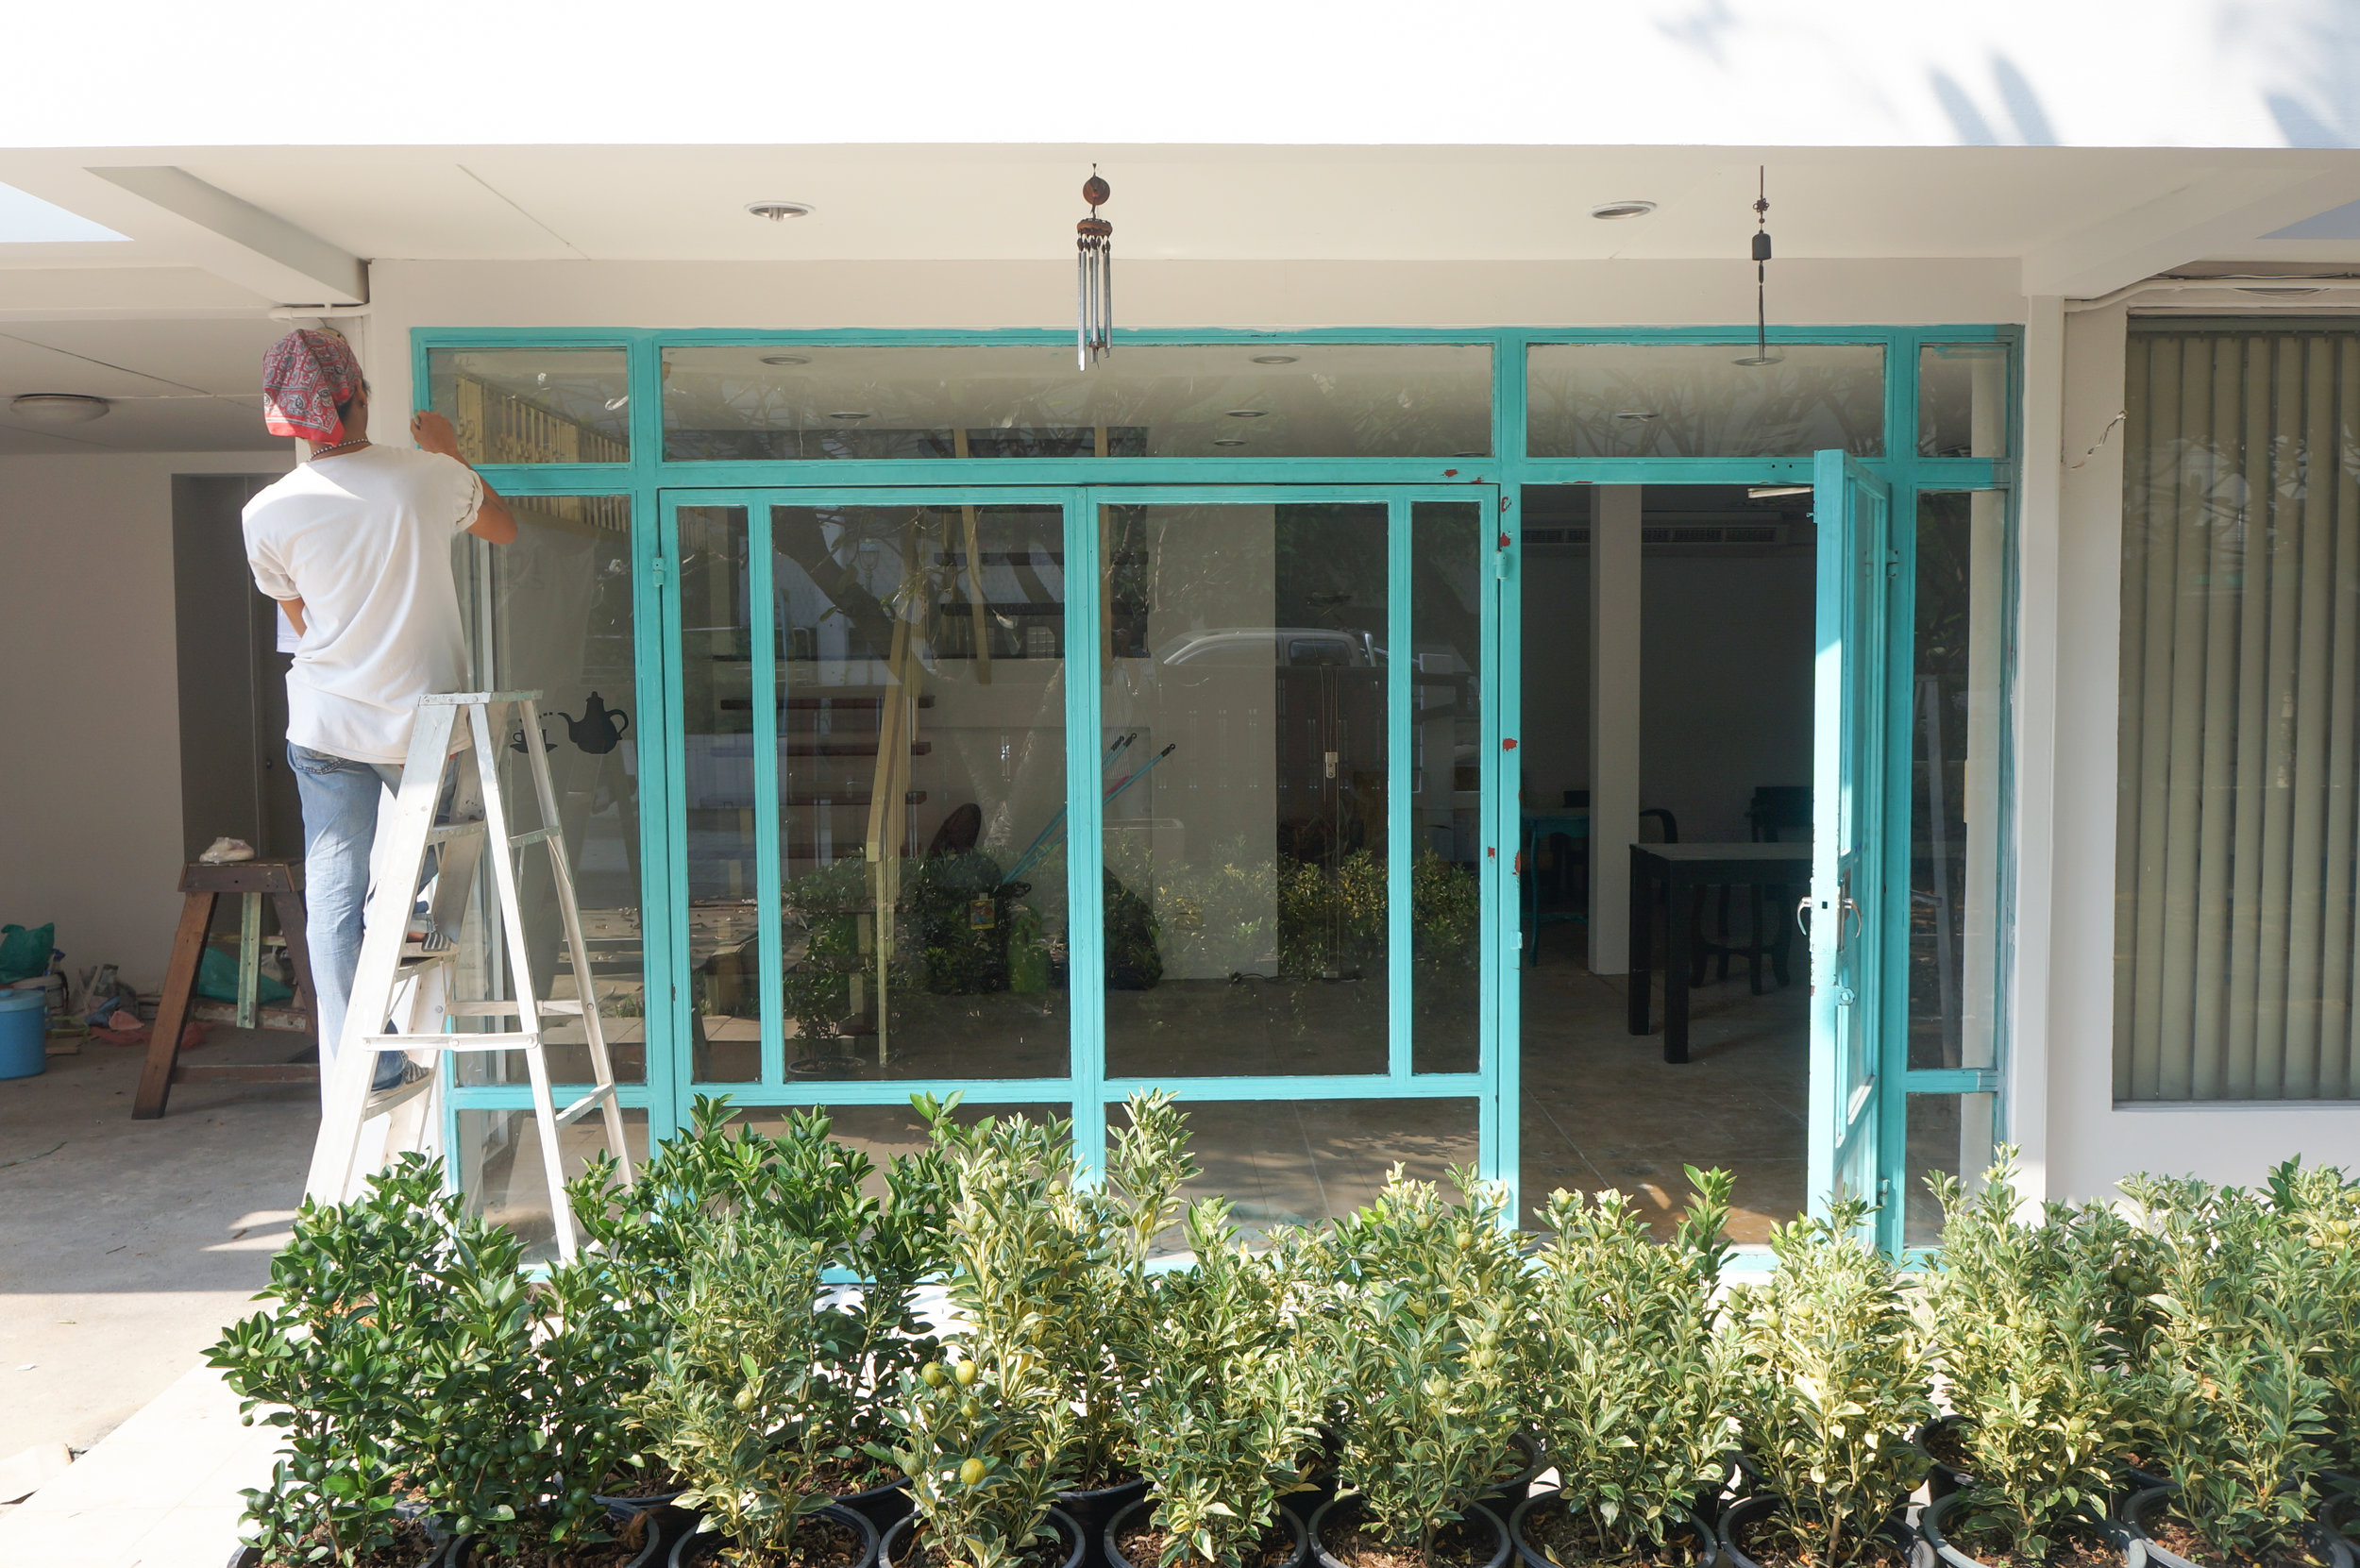 Blue Door Creative Space: Painting the windows